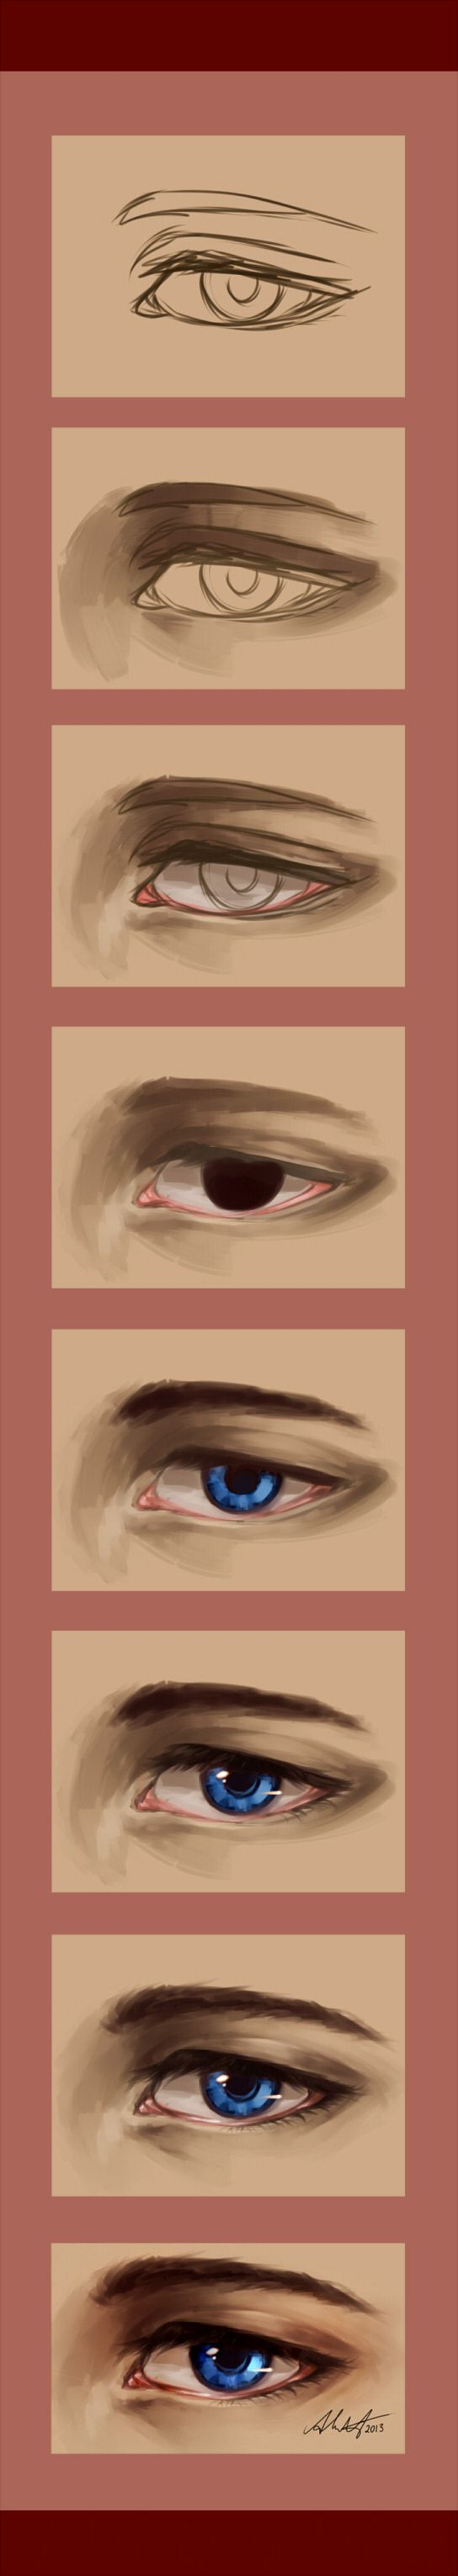 A semi-realistic eye tutorial #realisticeye